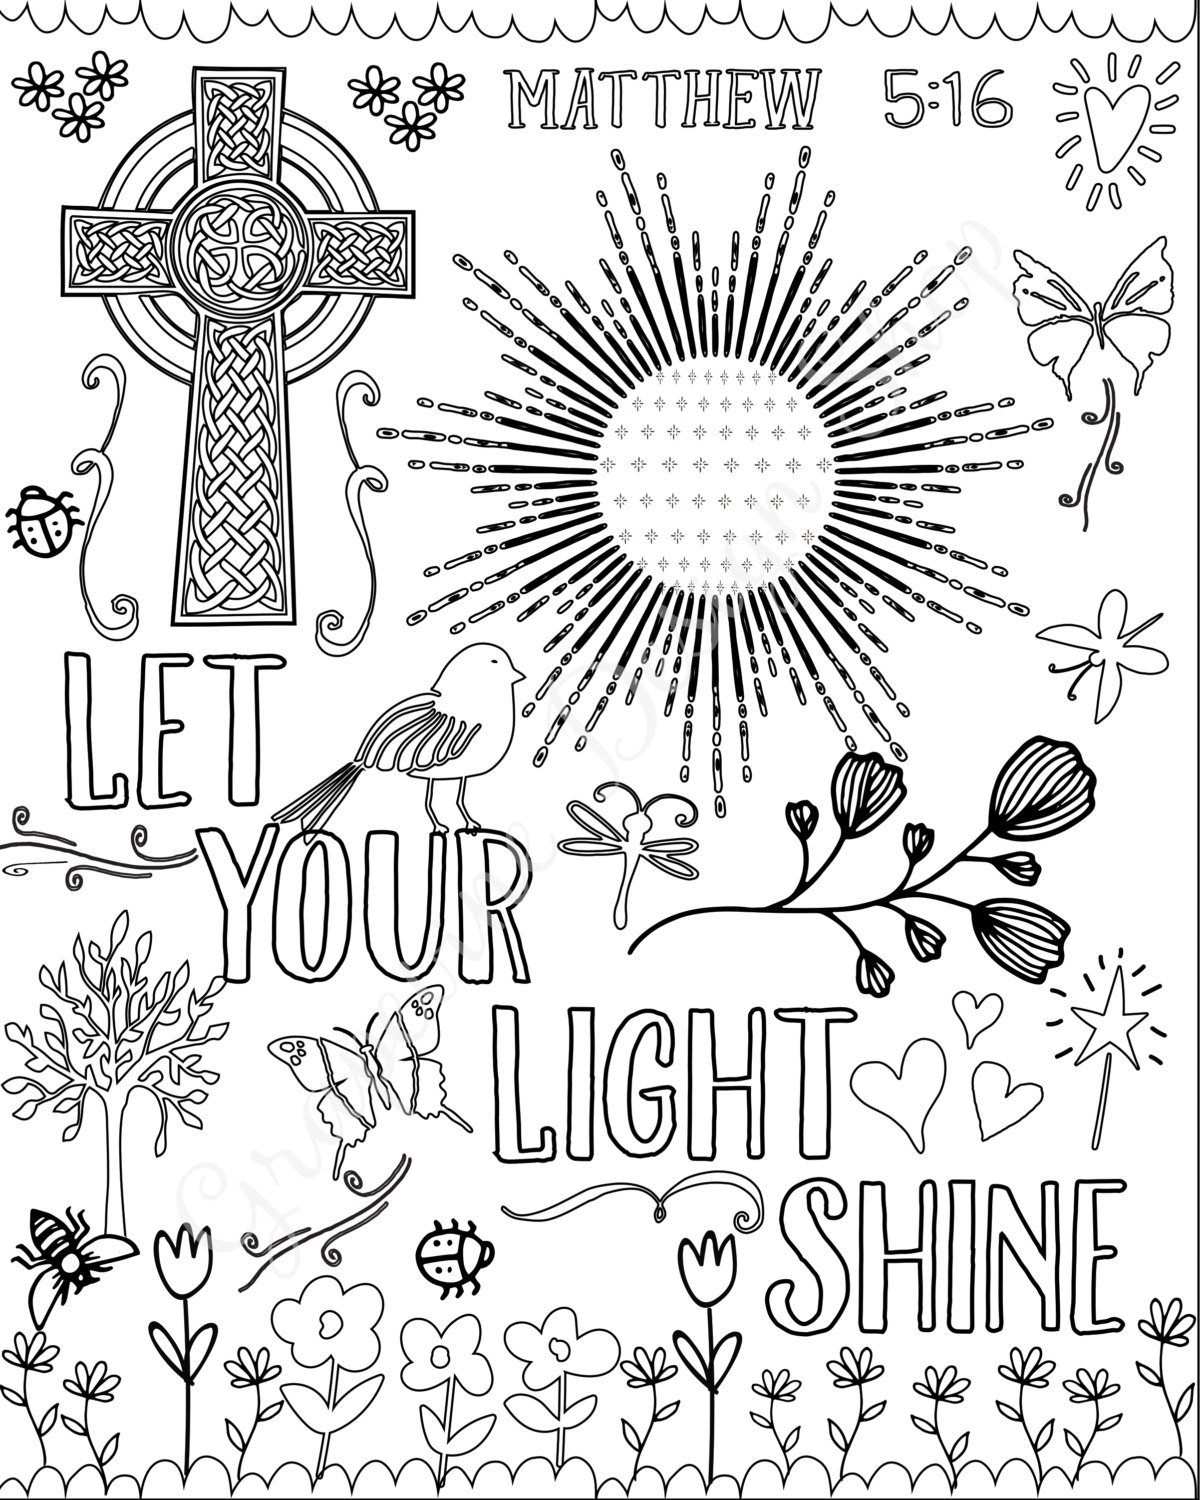 coloring pages with bible verses free printable bible verse coloring pages for adults with bible coloring pages verses